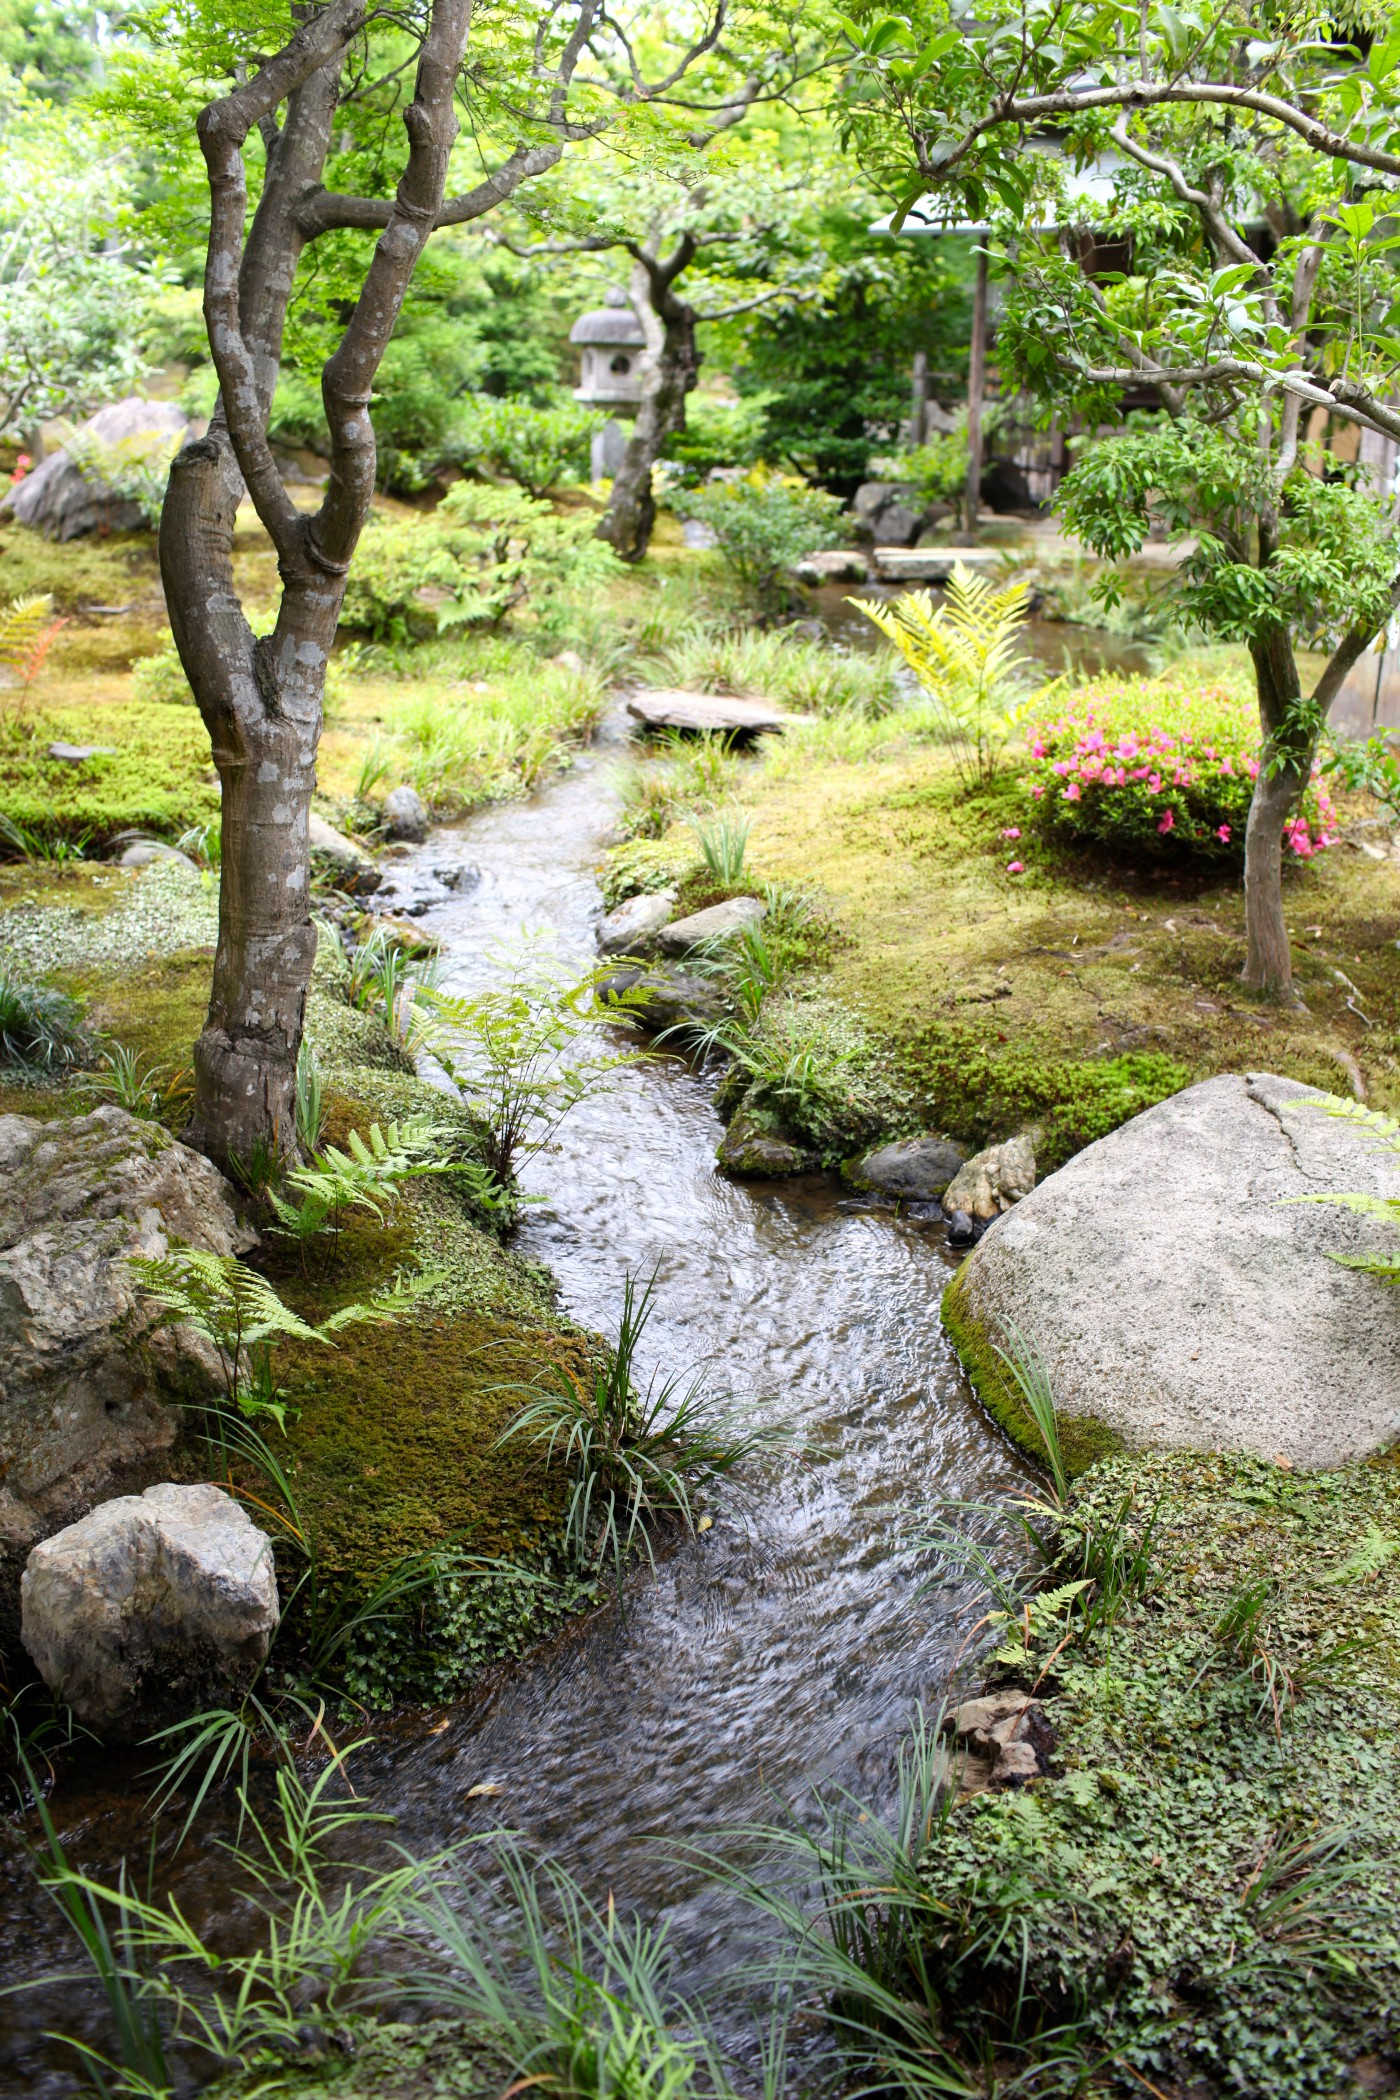 the image is that of a beautiful peaceful place in nature with a quiet stream running through it. There are trees on either side and stones and moss and ferns and flowers growing; it gives the idea of peace and tranquility.